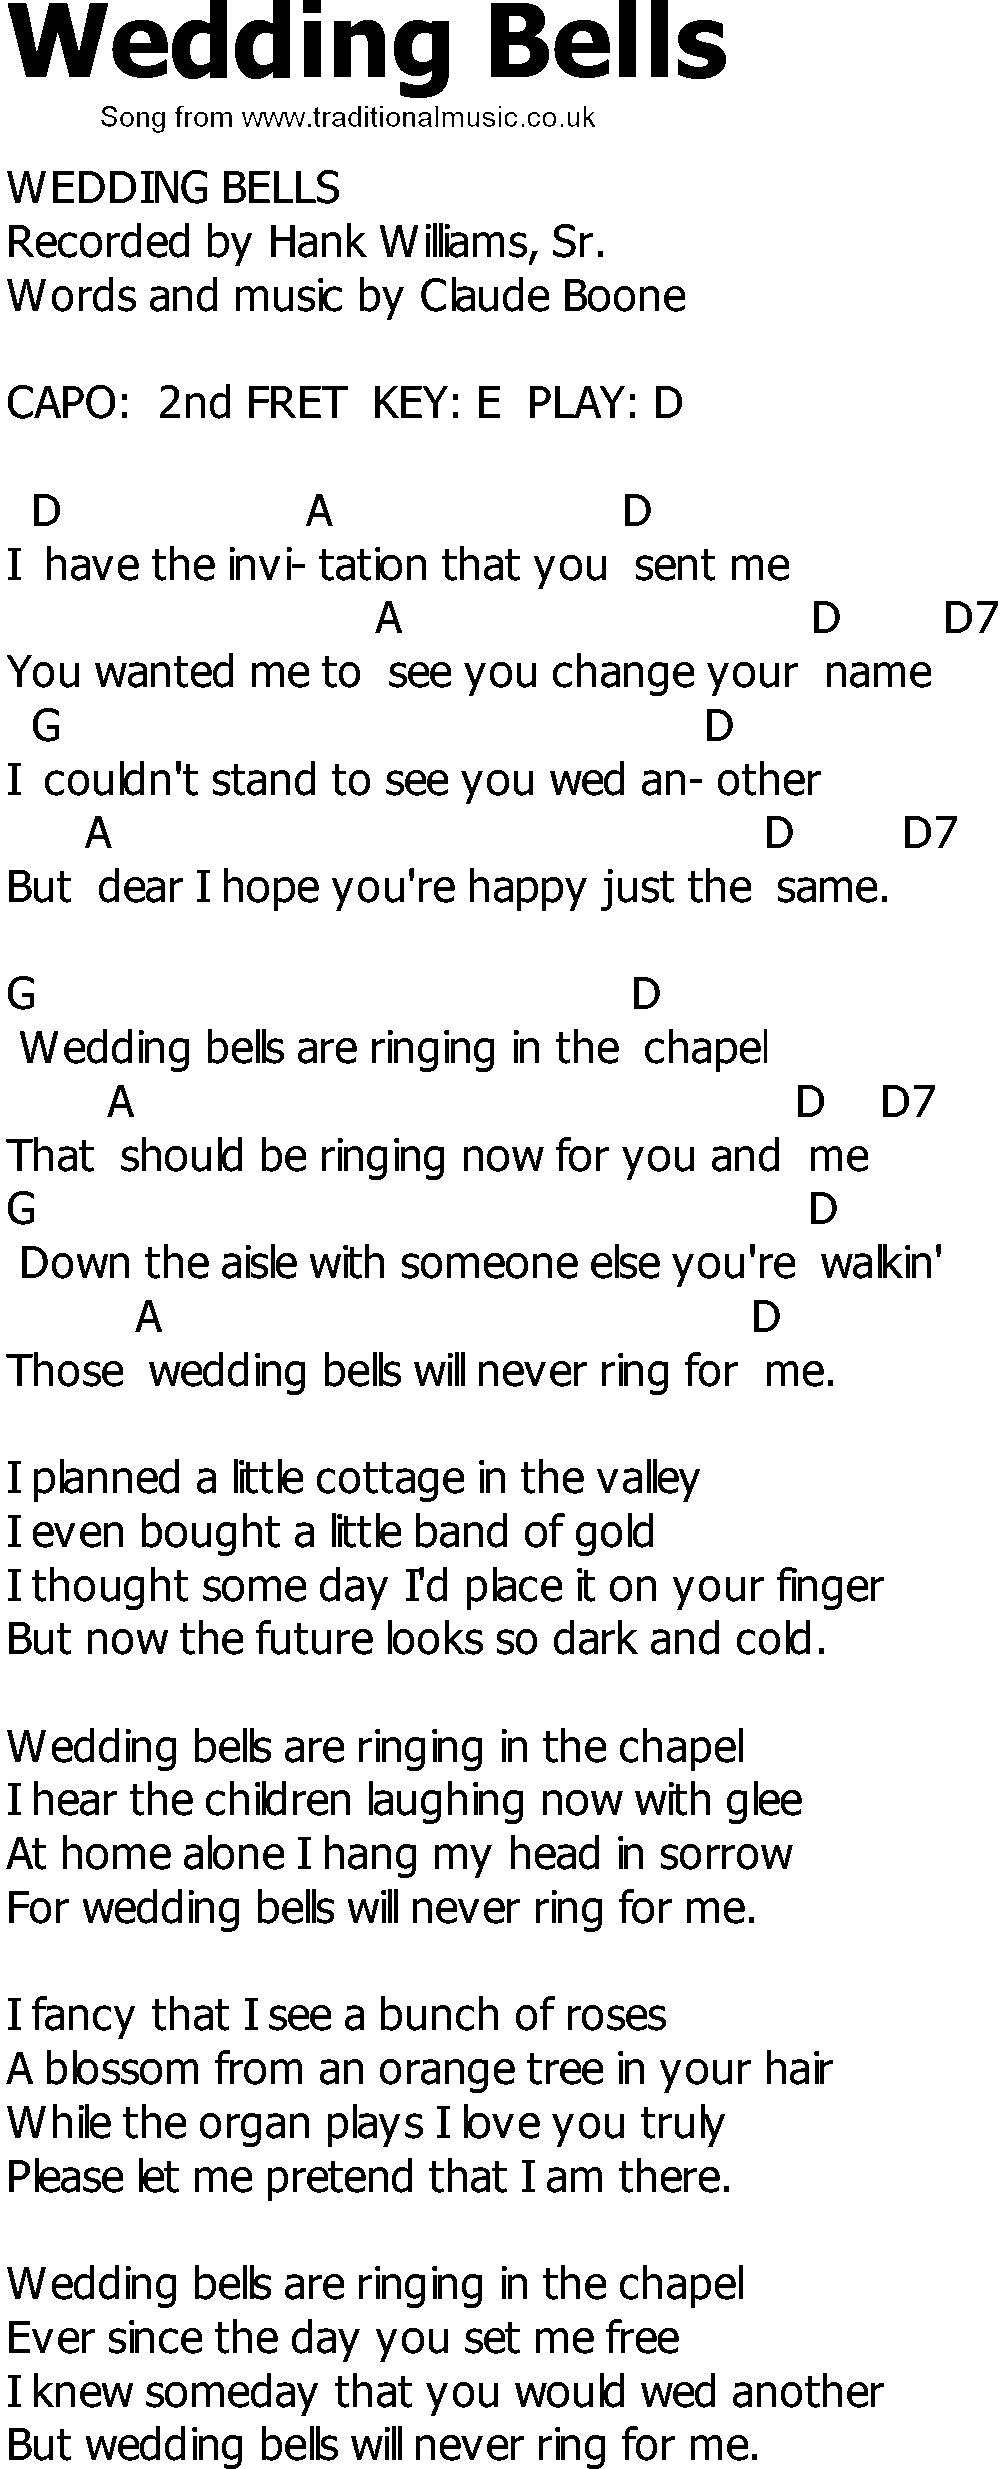 old country song lyrics with chords wedding bells